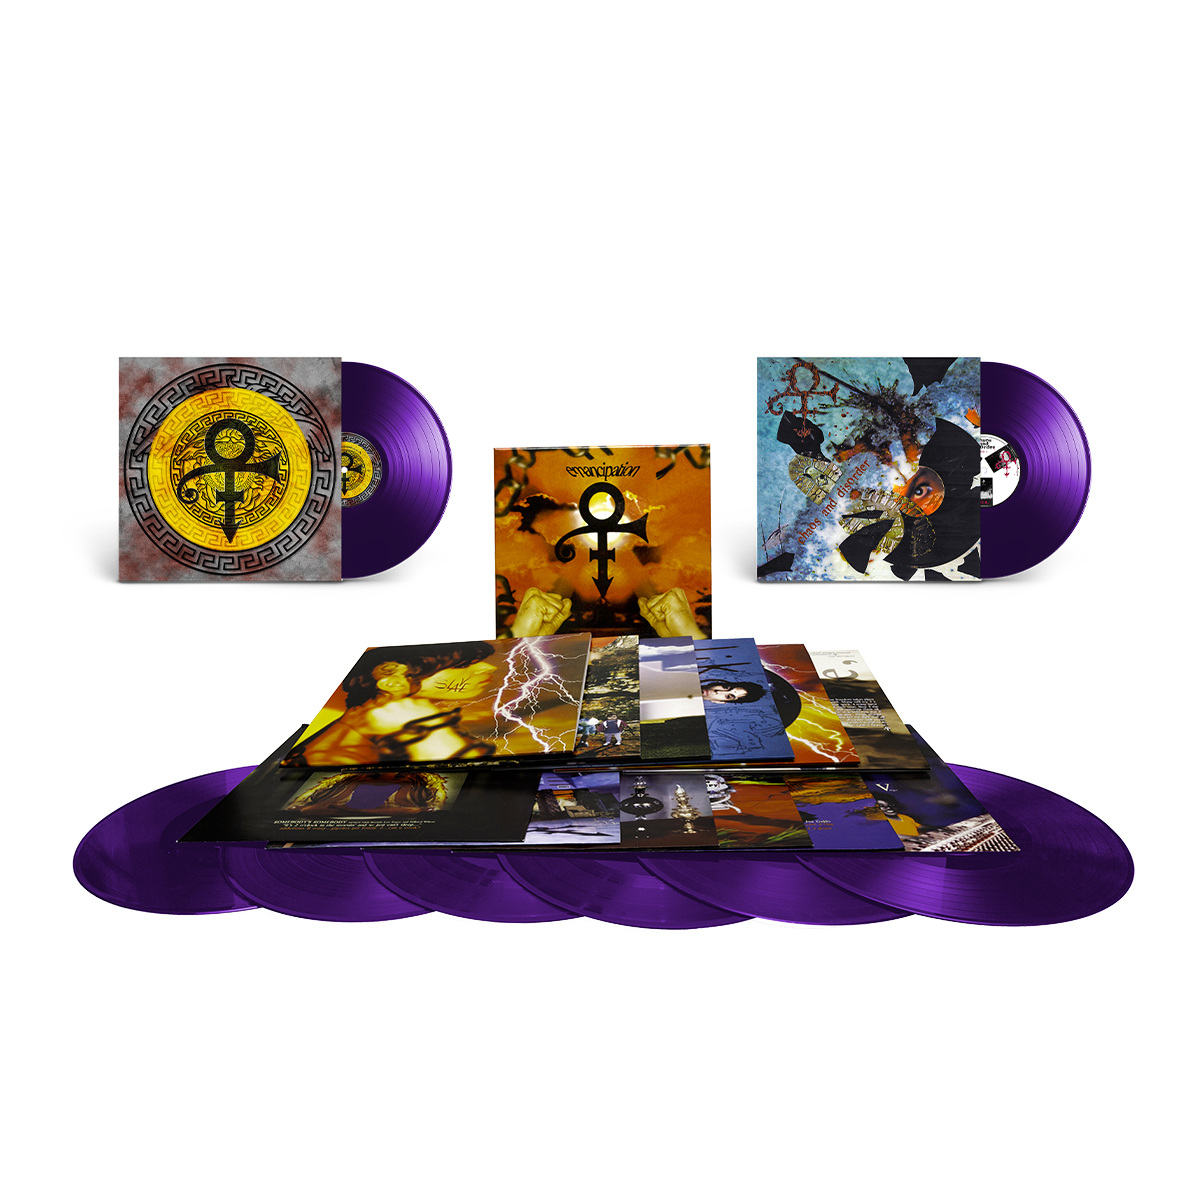 LP Bundle - Emancipation (6LP), Chaos And Disorder (1LP), The Versace Experience (Prelude 2 Gold)(1LP)